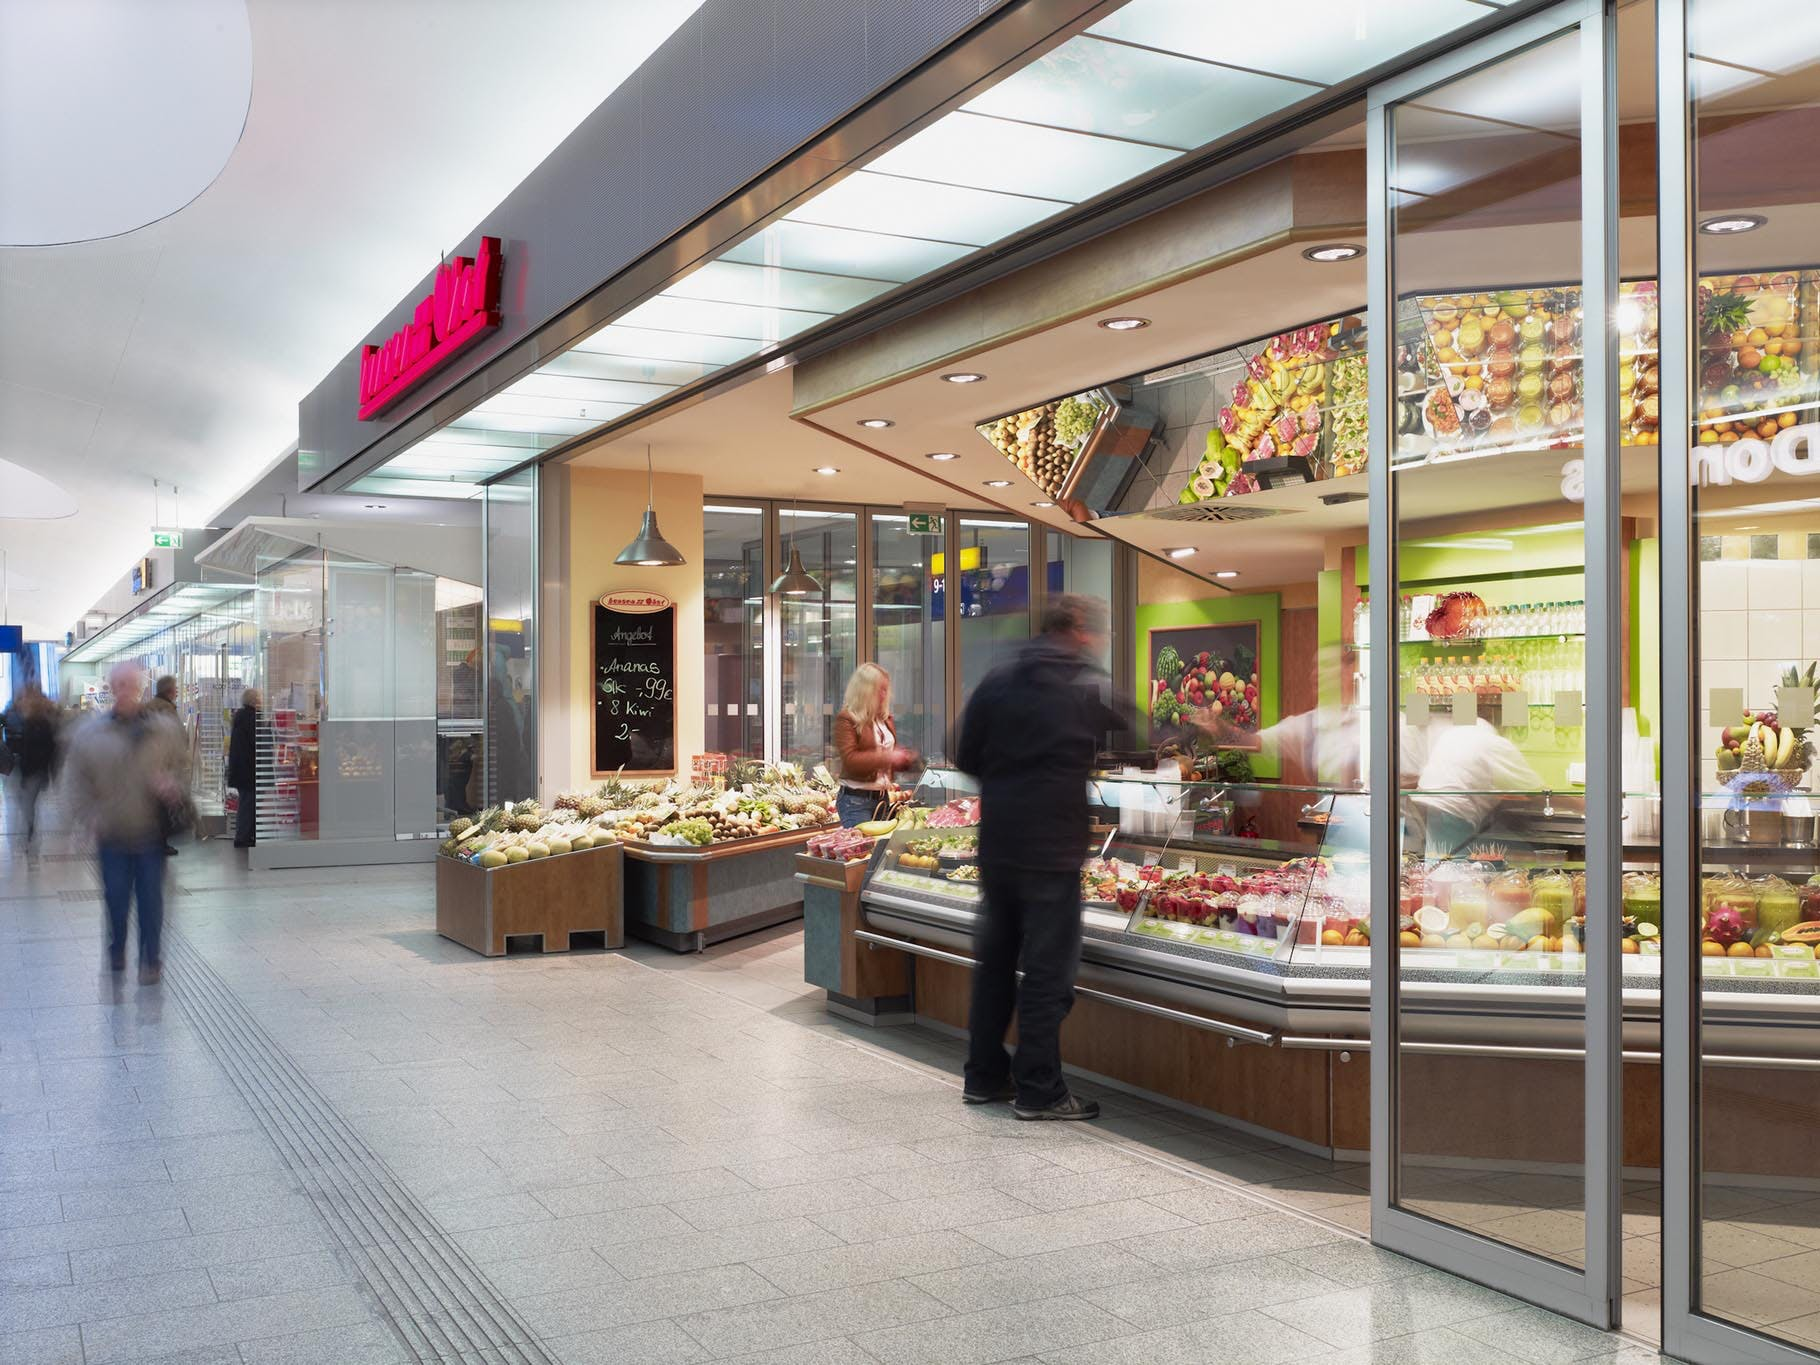 commercial interior glass walls partitions offer sound control features and flexibility in interior shopping center